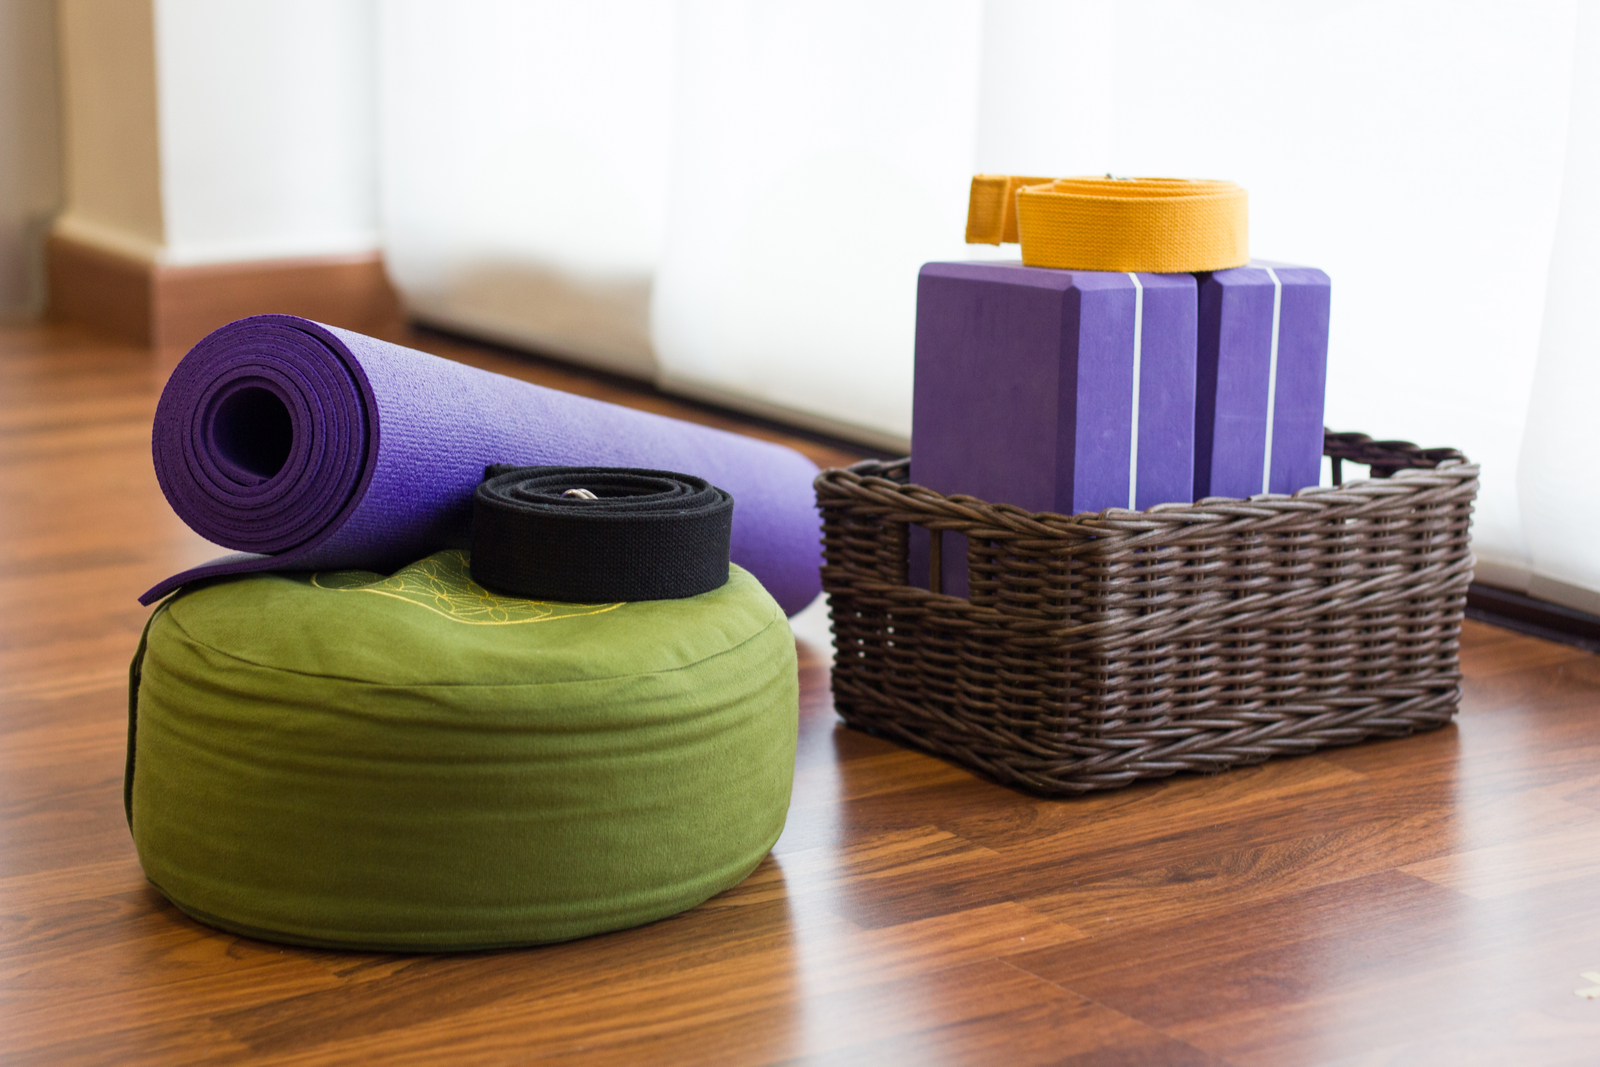 Right Equipment | 10 Easy Yoga Tips To Get The Most Out Of Your Practice